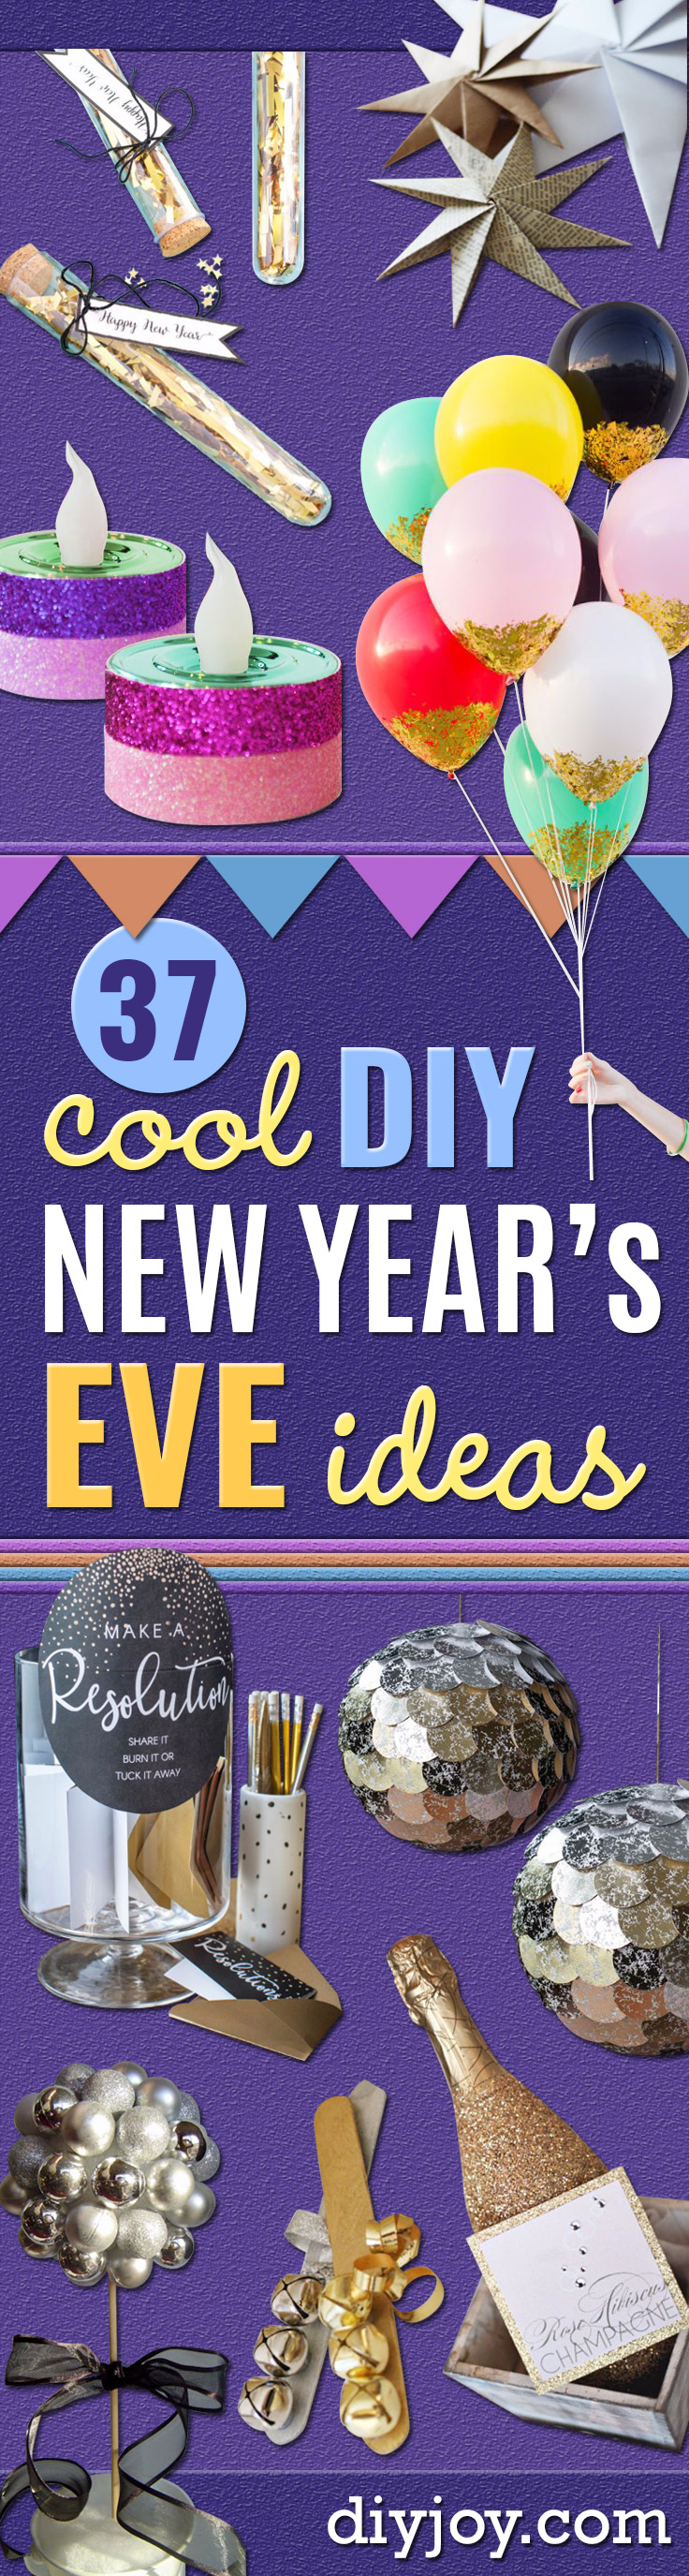 New Years Eve Decor Ideas - DIY New Year's Eve Decorations - Cheap Ideas for Banners, Balloons, Party Tables, Centerpieces and Festive Streamers and Lights - Cool Placecards, Photo Backdrops, Party Hats, Party Horns and Champagne Glasses - Cute Invitations, Games and Free Printables